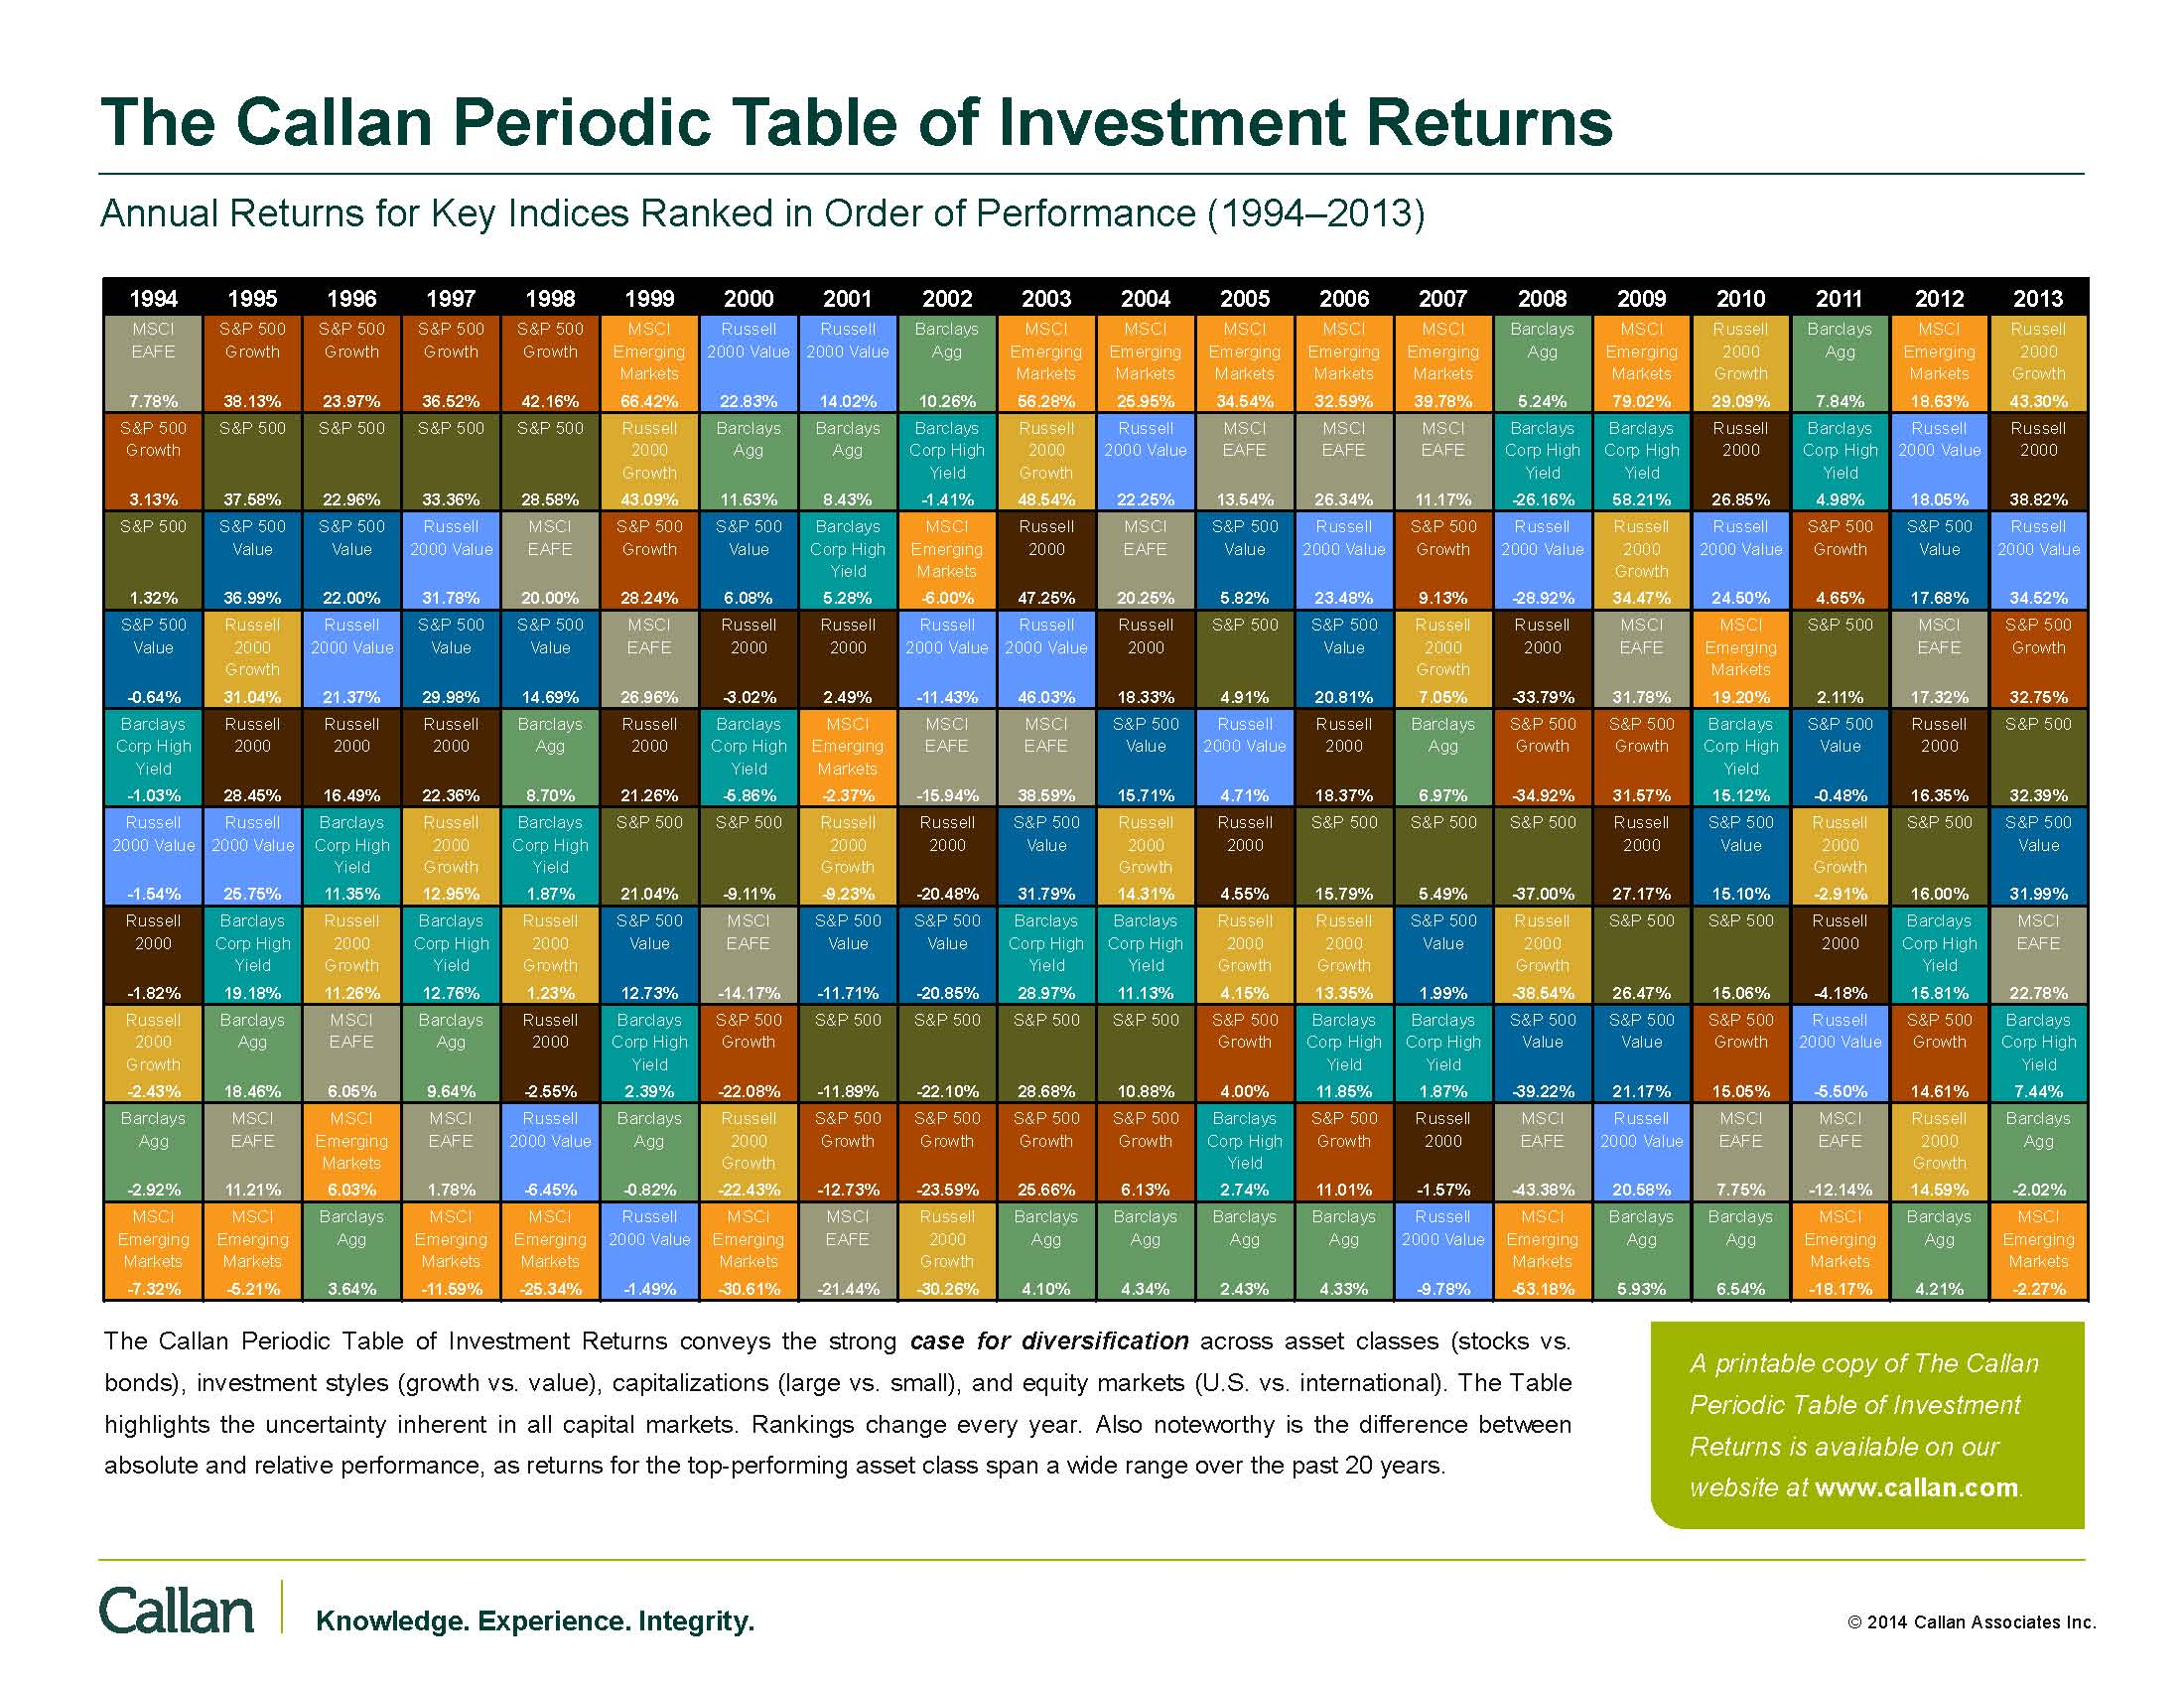 Callan periodic table of investment returns millennial finance callan periodic table of investment returns 2013page1 urtaz Images